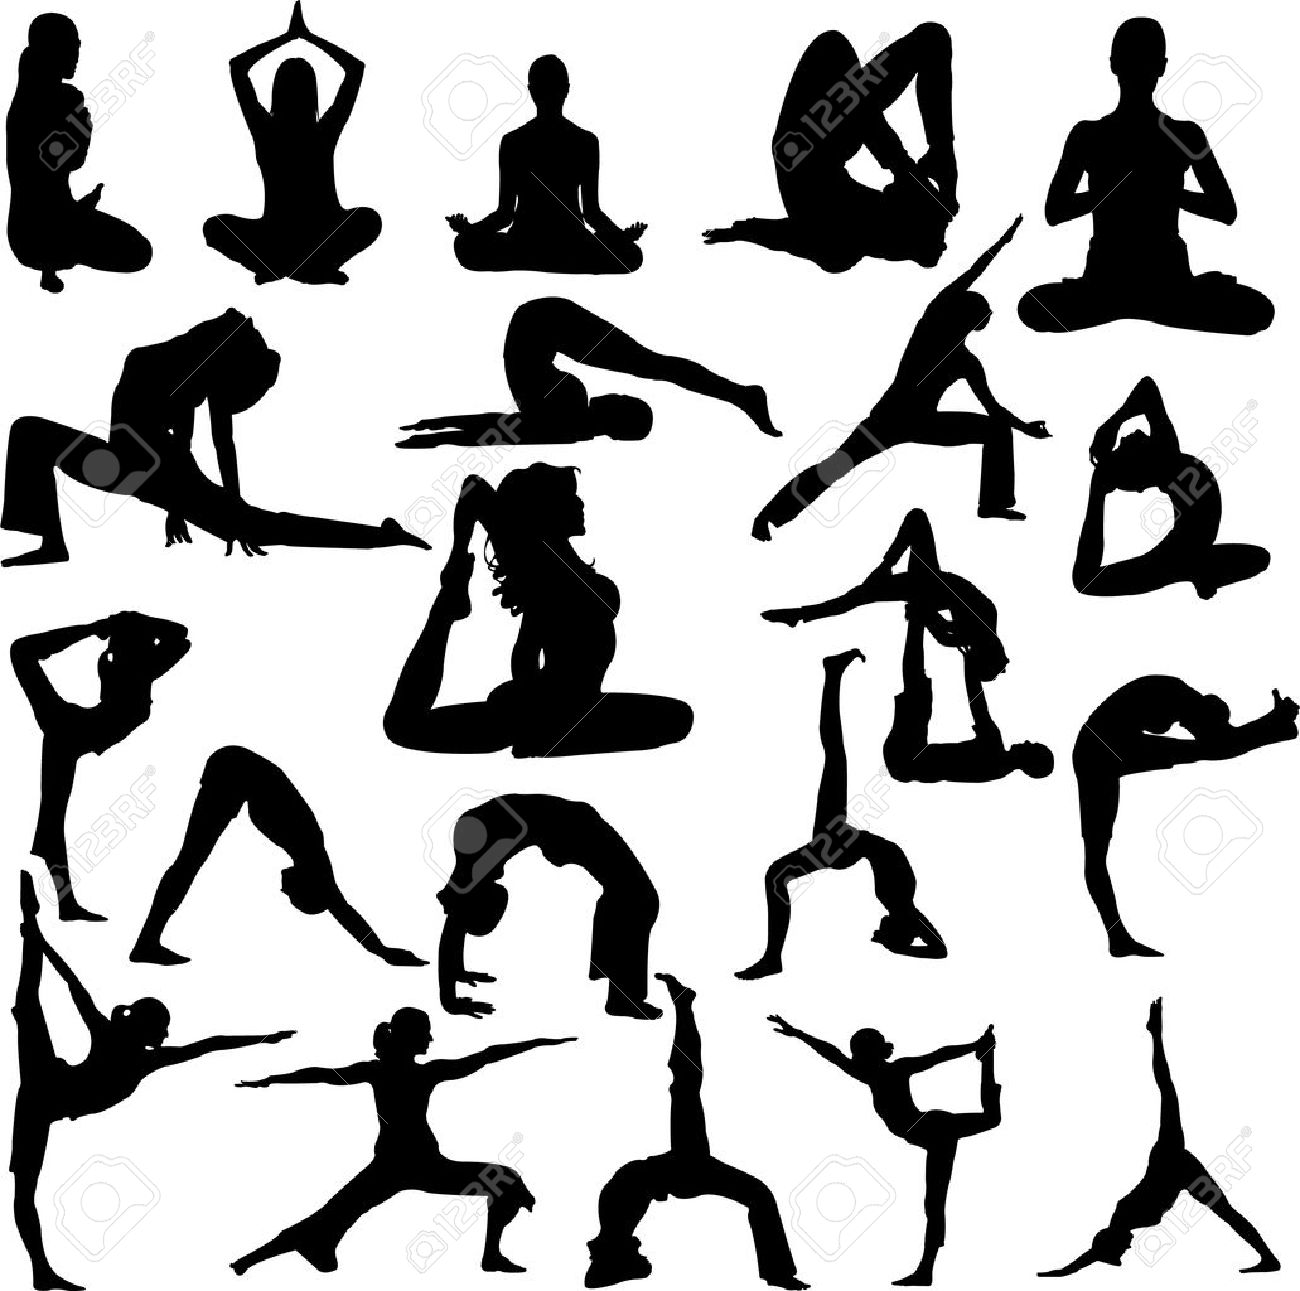 Yoga Vector Royalty Free Cliparts, Vectors, And Stock Illustration ...